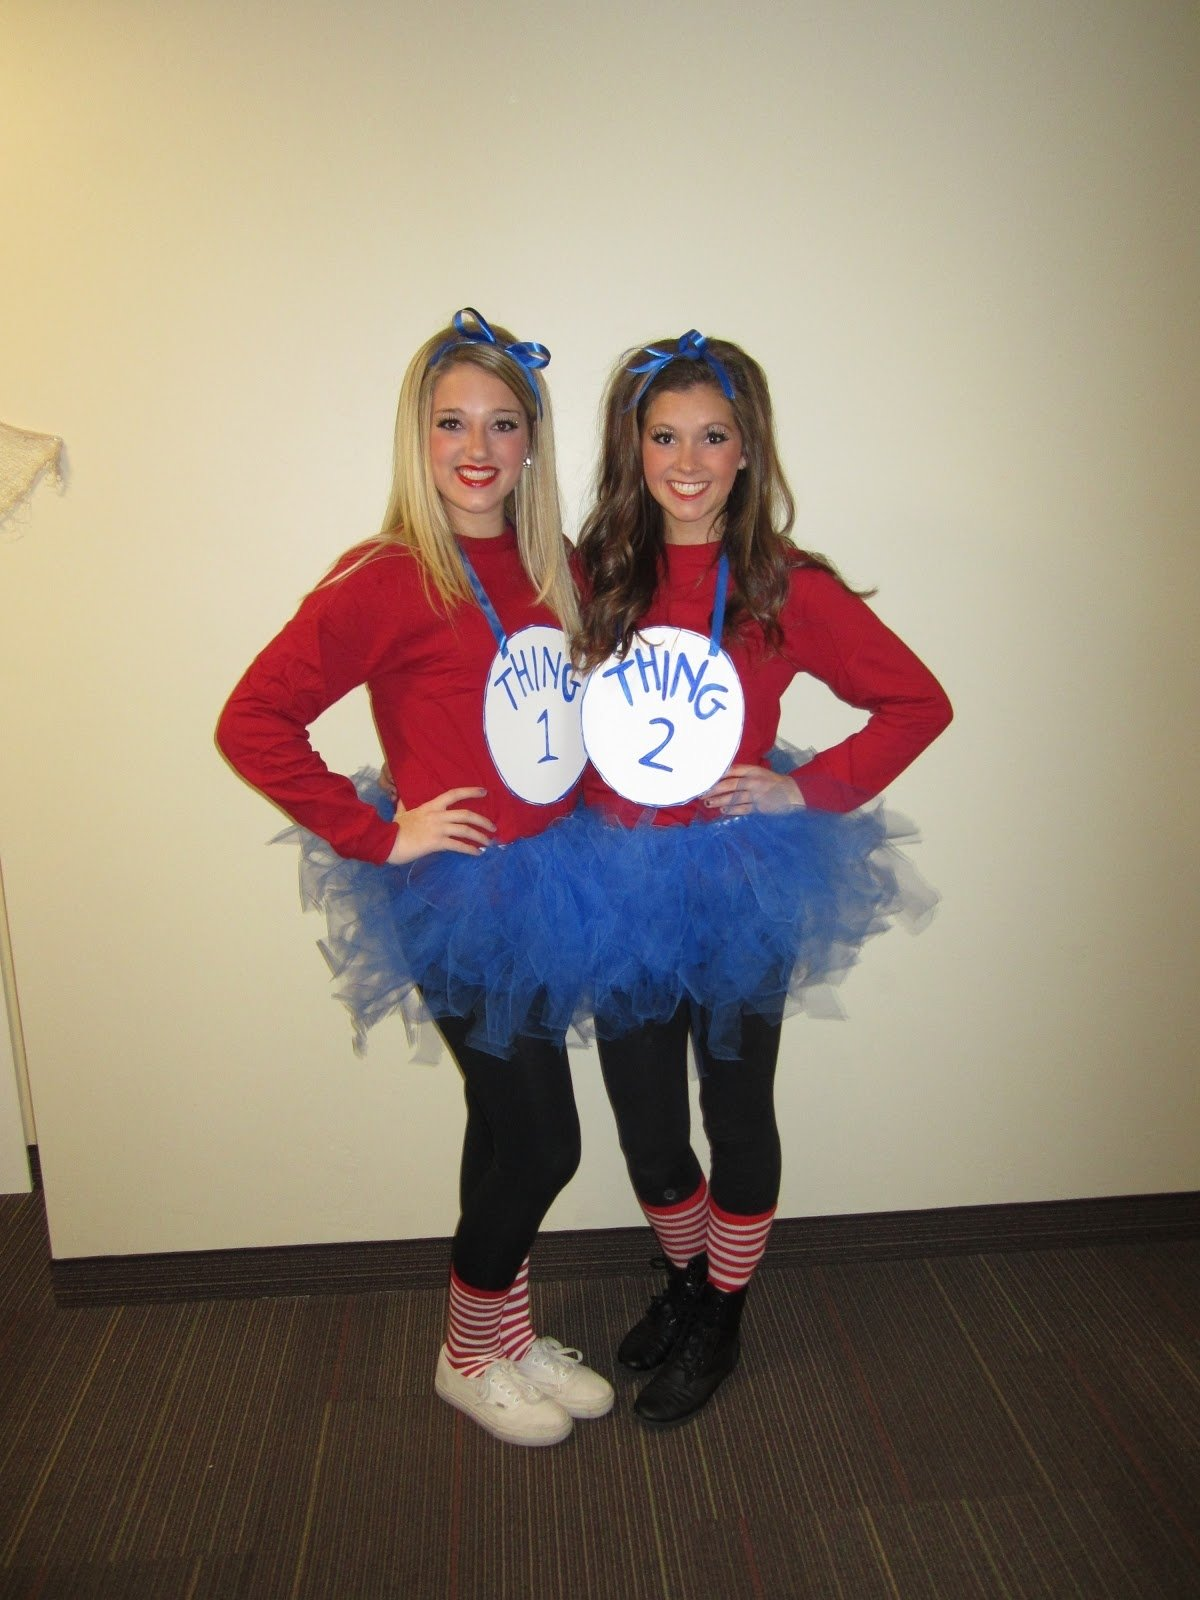 10 Cute Costume Ideas For Two Girls Images For Thing One And Thing Two  Costumes Halloween Sc 1 St Unique Ideas 2018 cec0d25a8